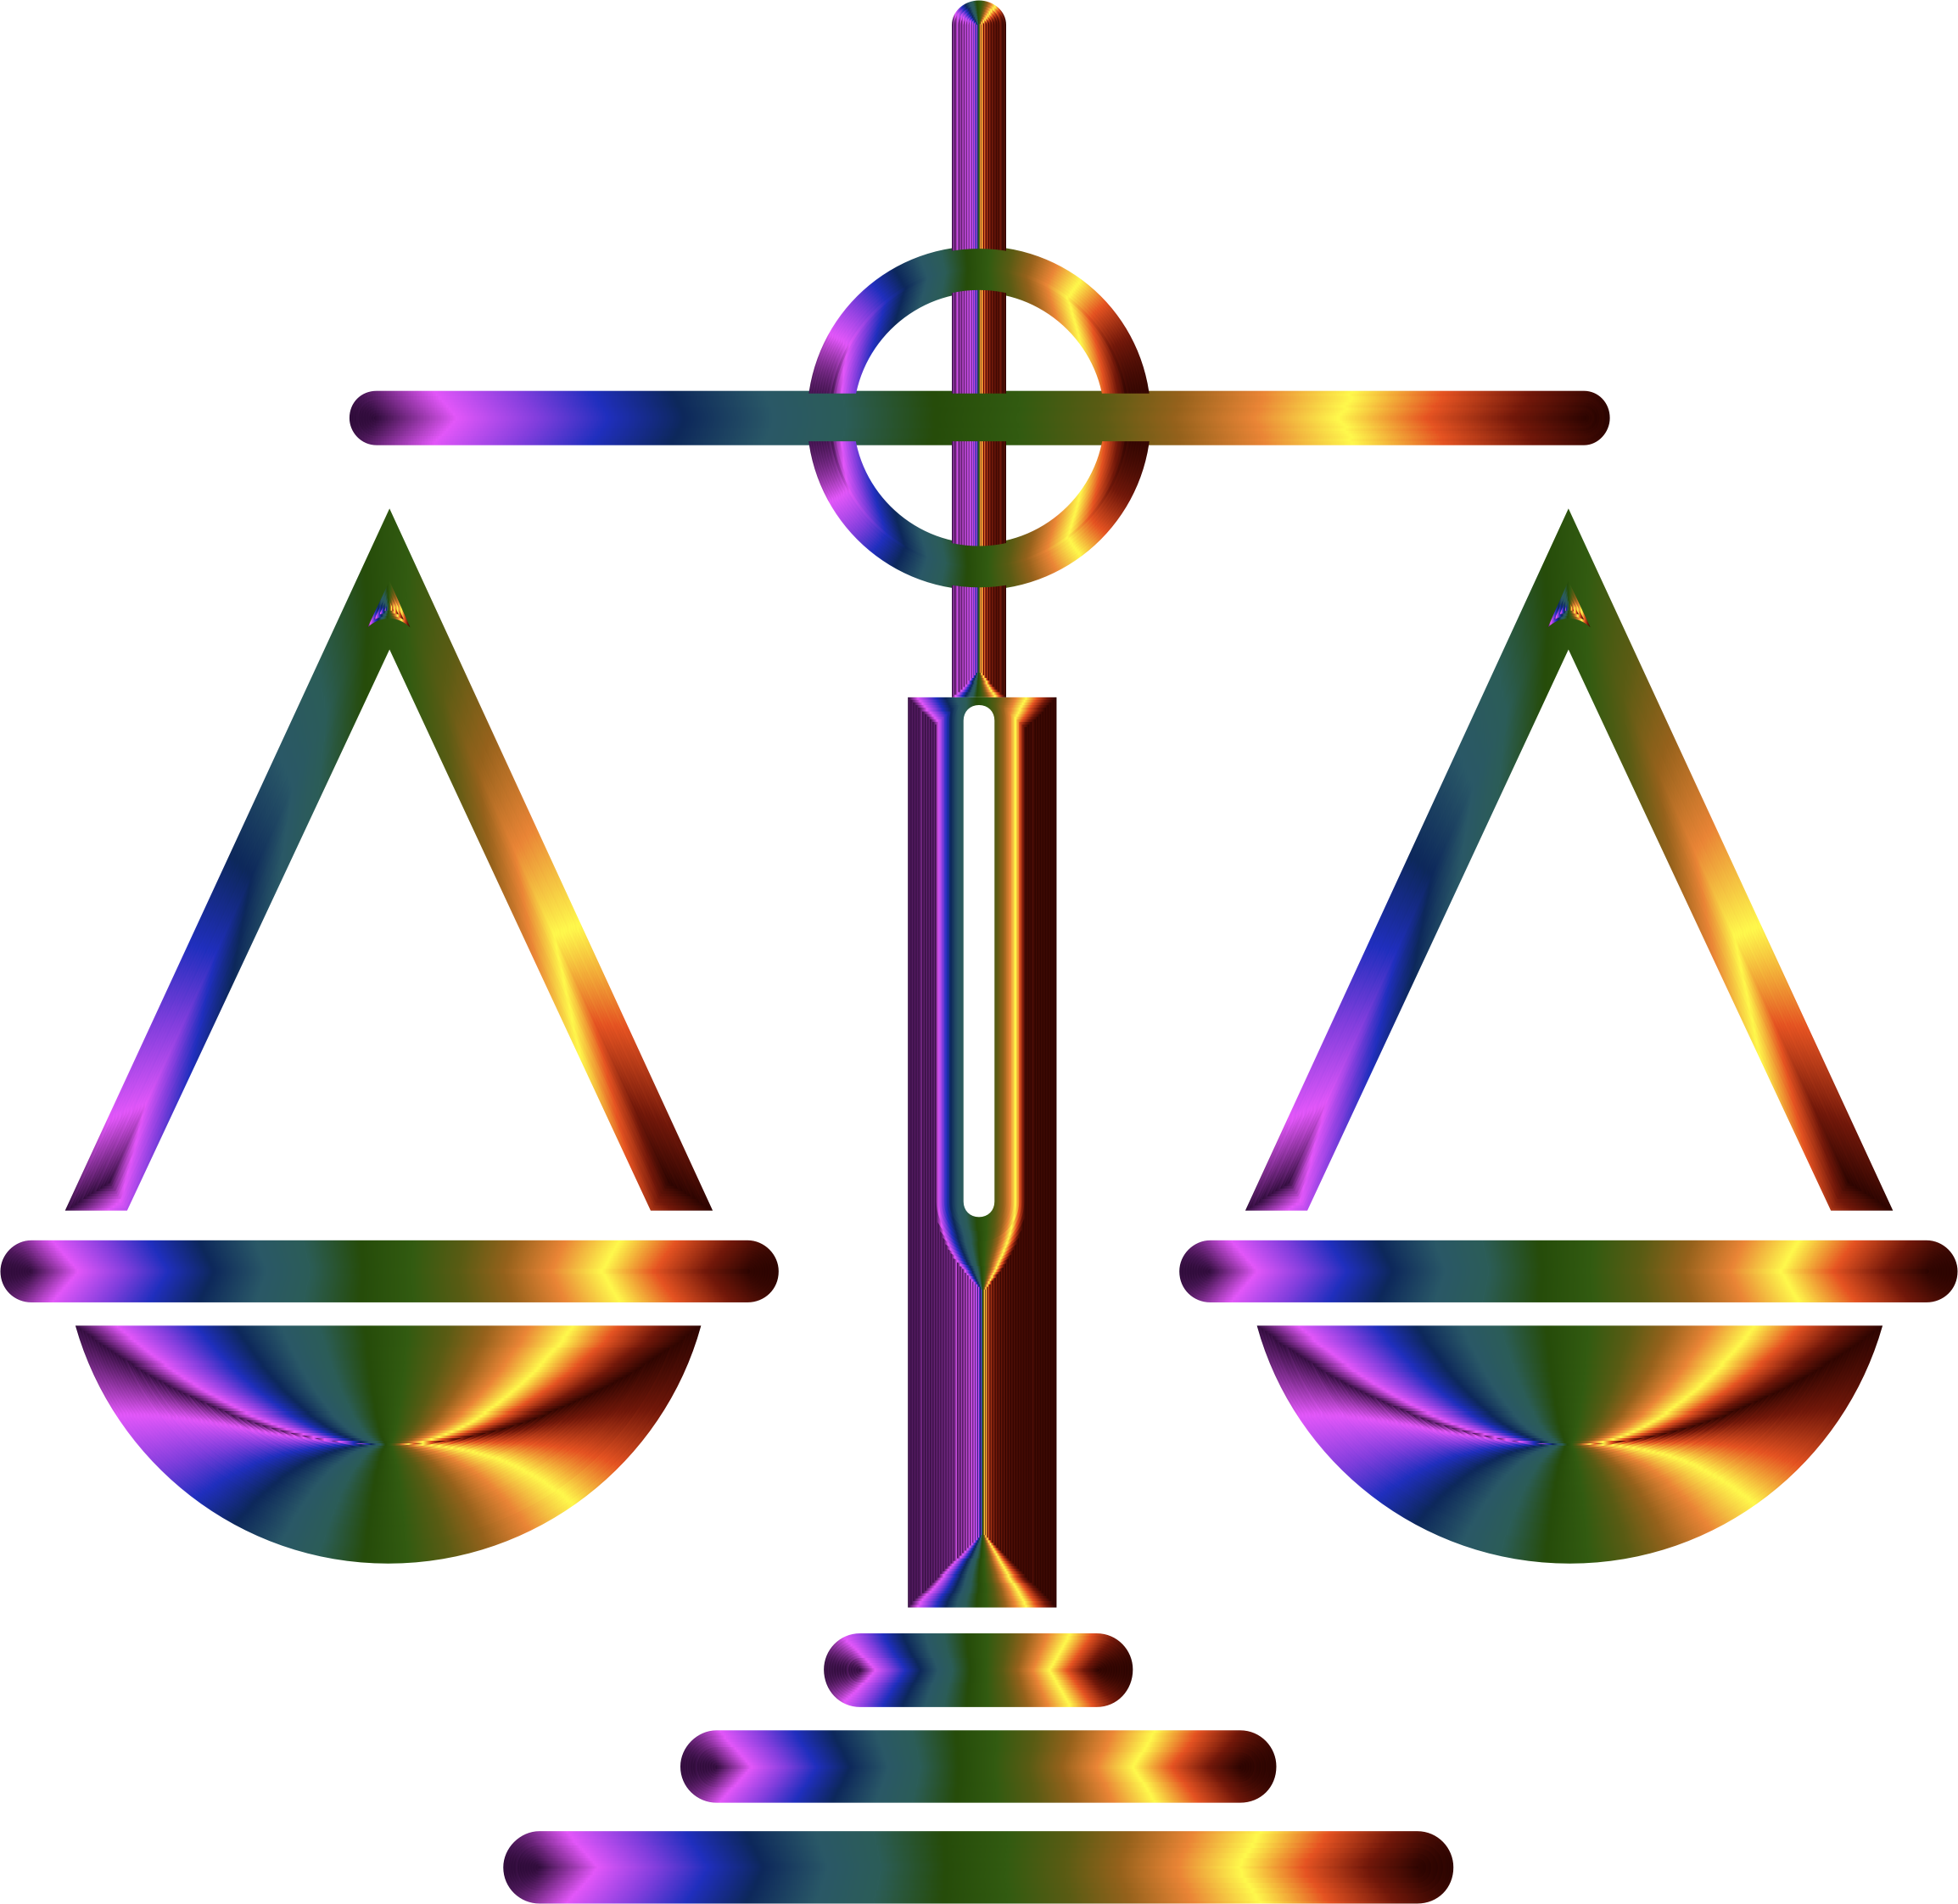 Chromatic Scales Of Justice Icon by GDJ